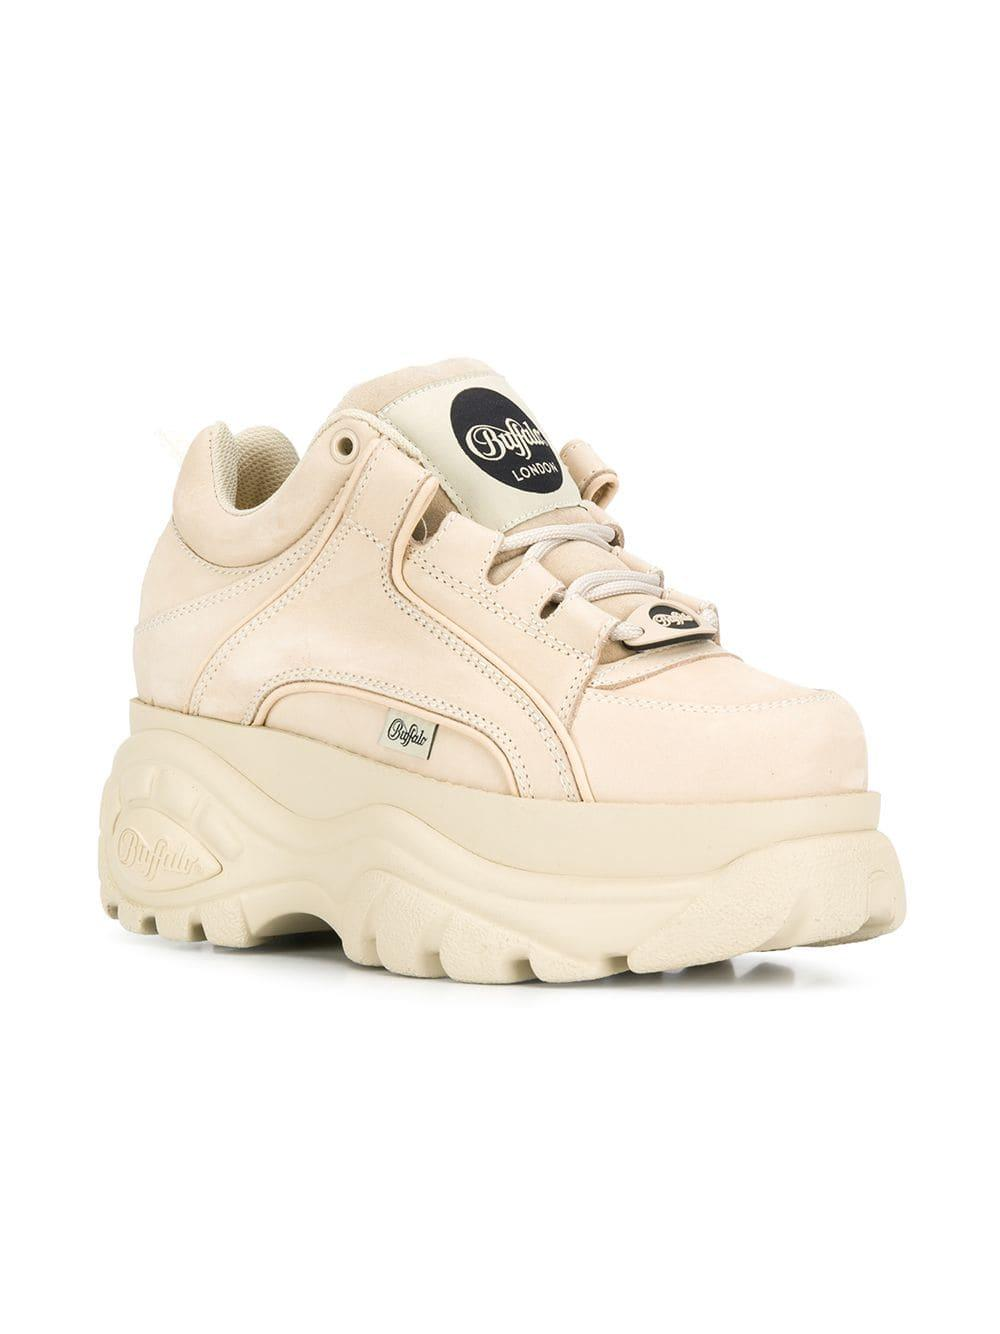 6501b2fed9 Lyst - Buffalo Platform Sneakers in Natural